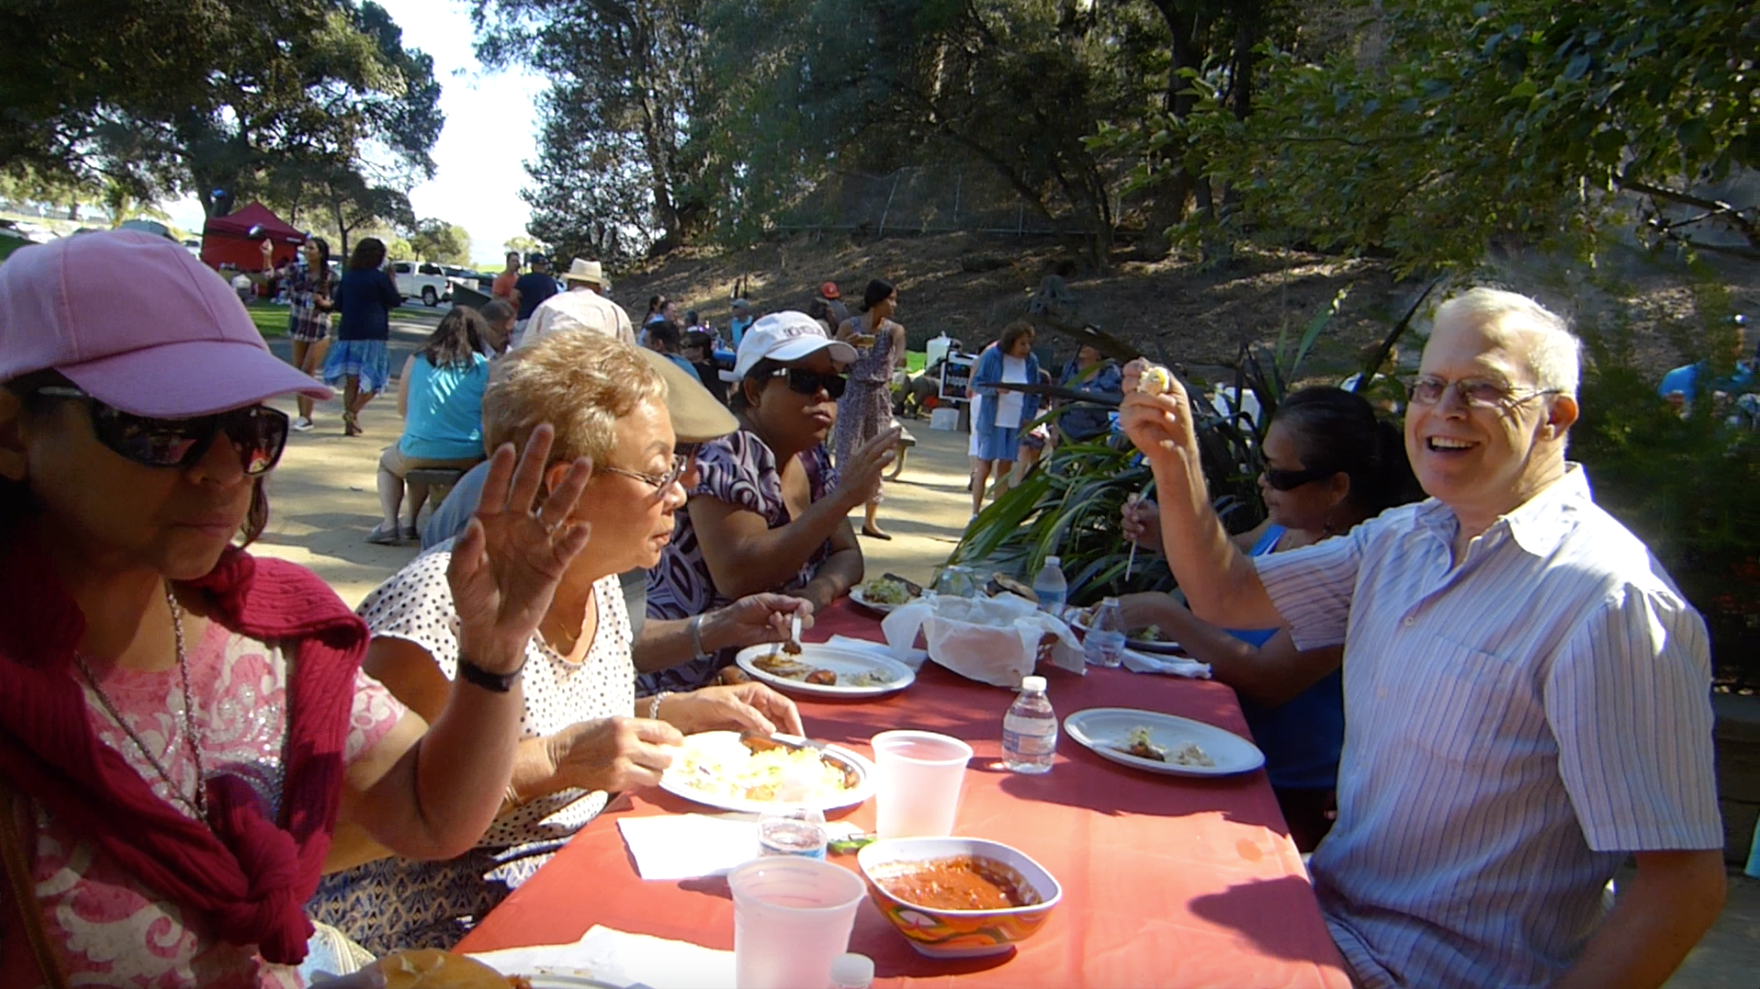 Marin Vision Impaired Picnic - Marin County.png